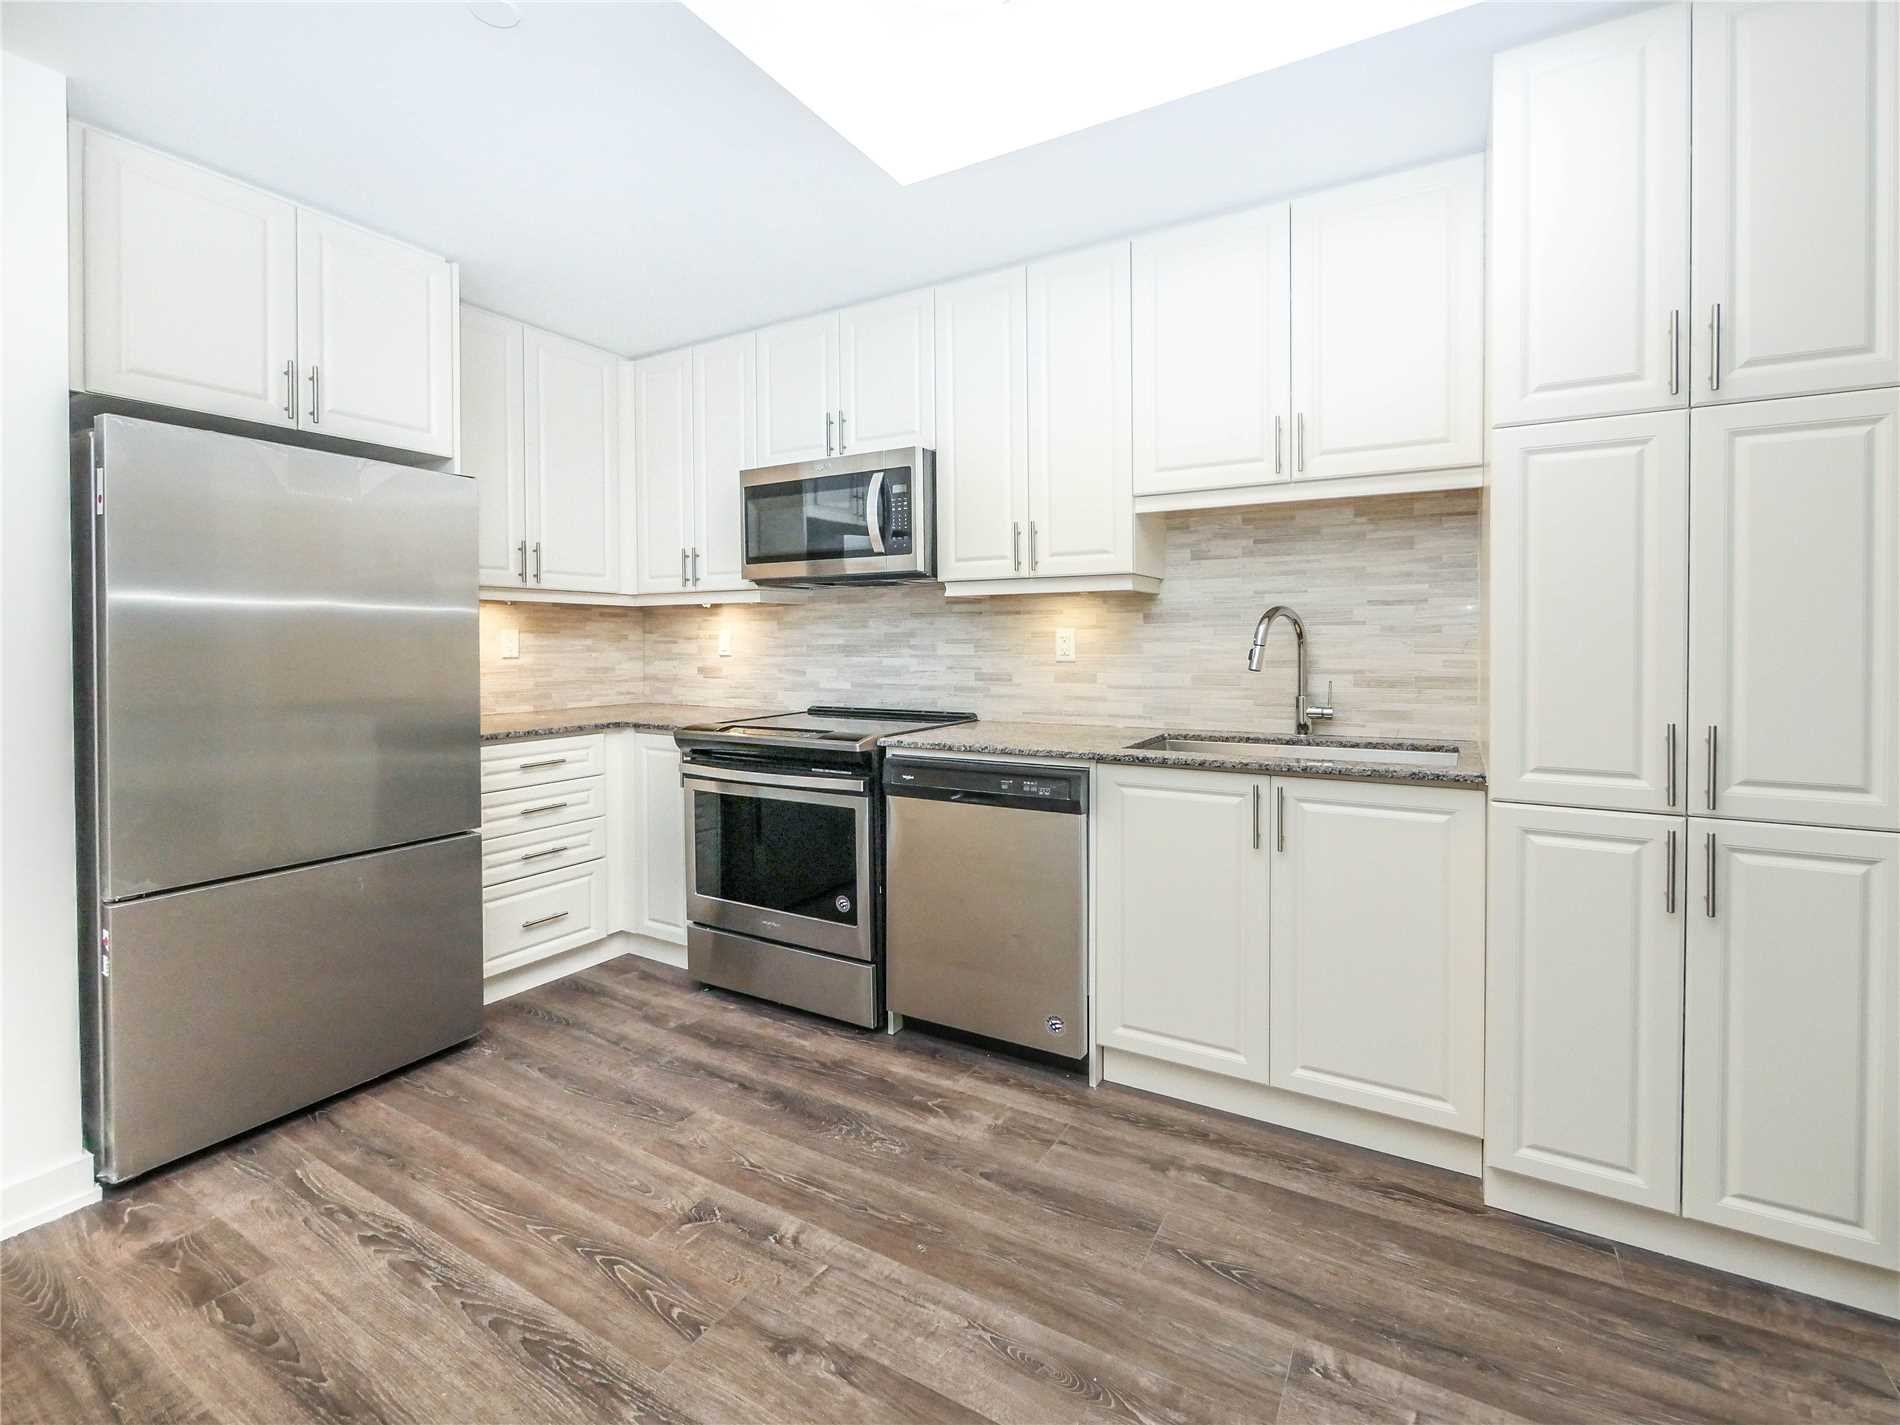 pictures of 6235 Main St, Whitchurch-Stouffville L4A 4J3